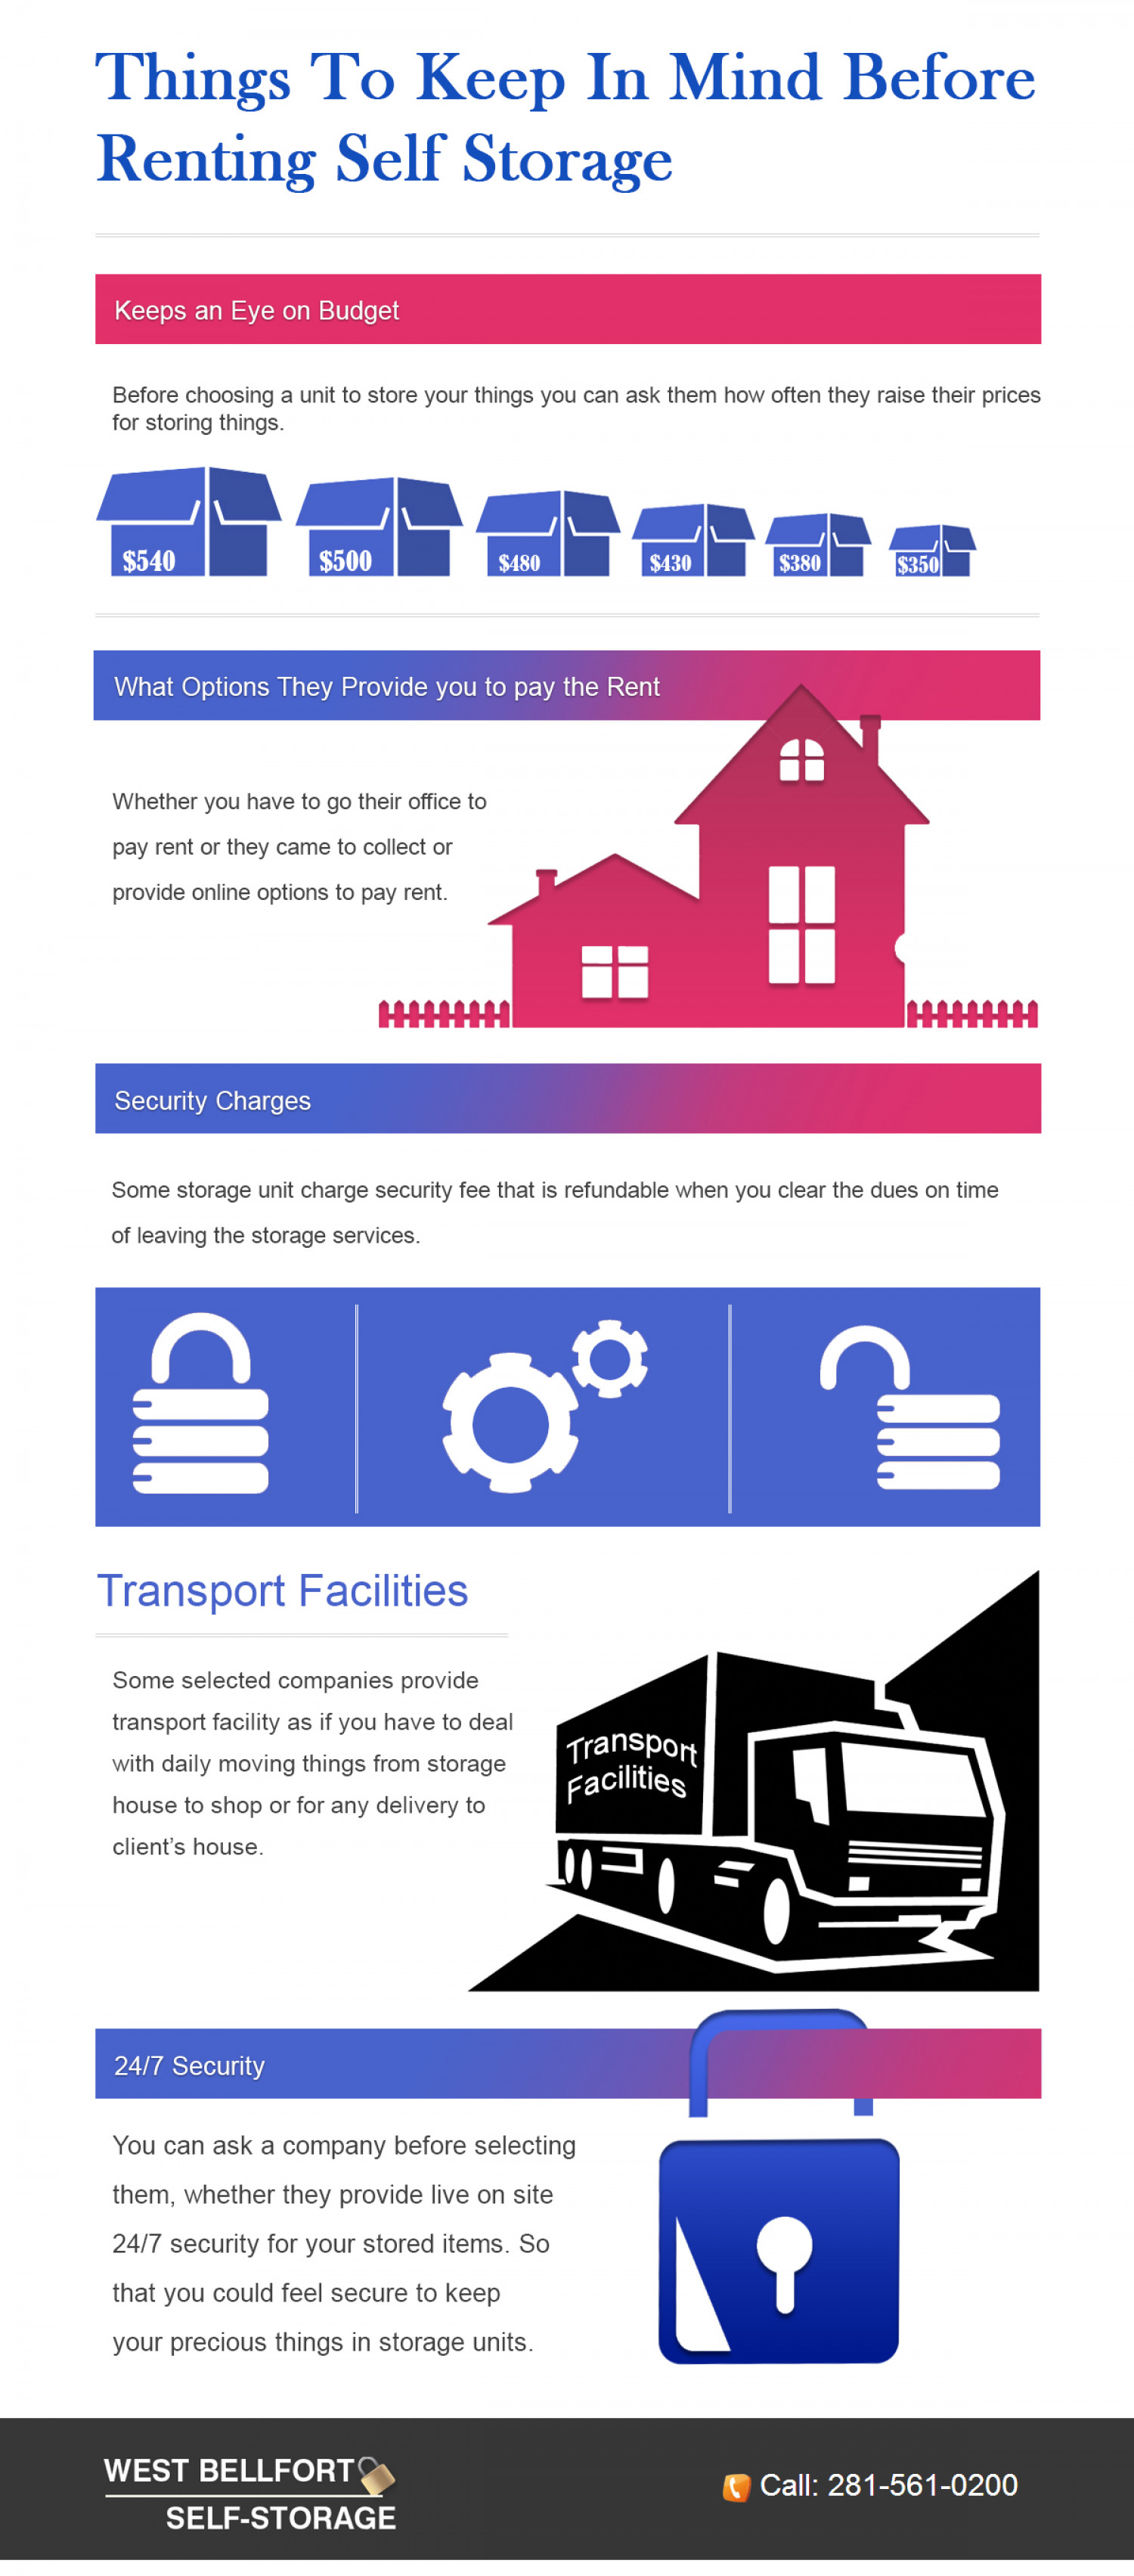 Things to Keep in Mind Before Renting a Self Storage Infographic